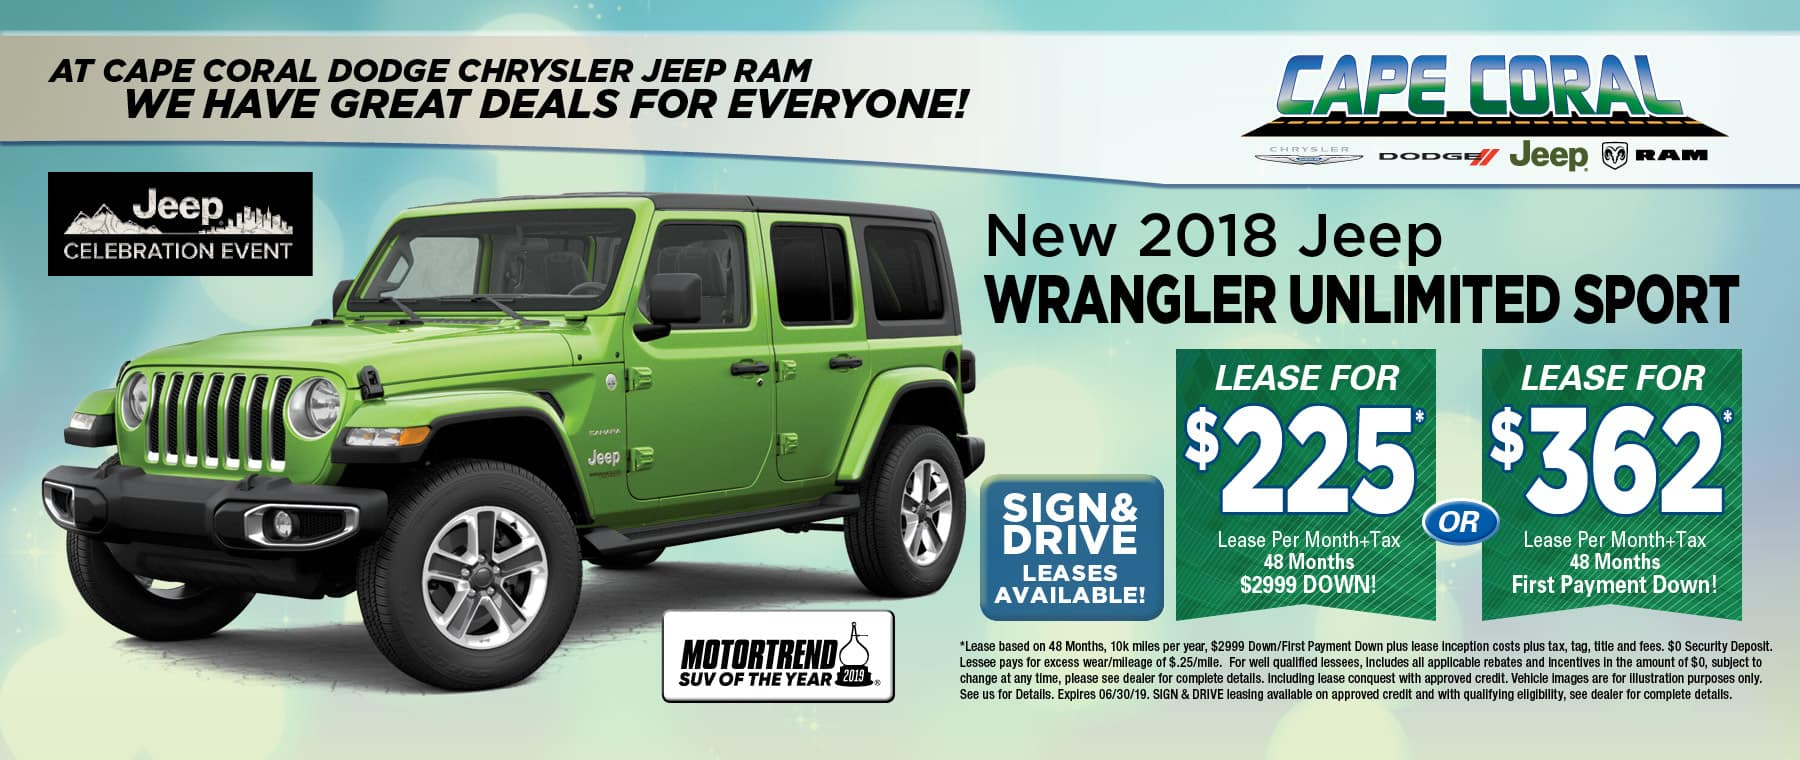 2019 Jeep Wrangler Unlimited!